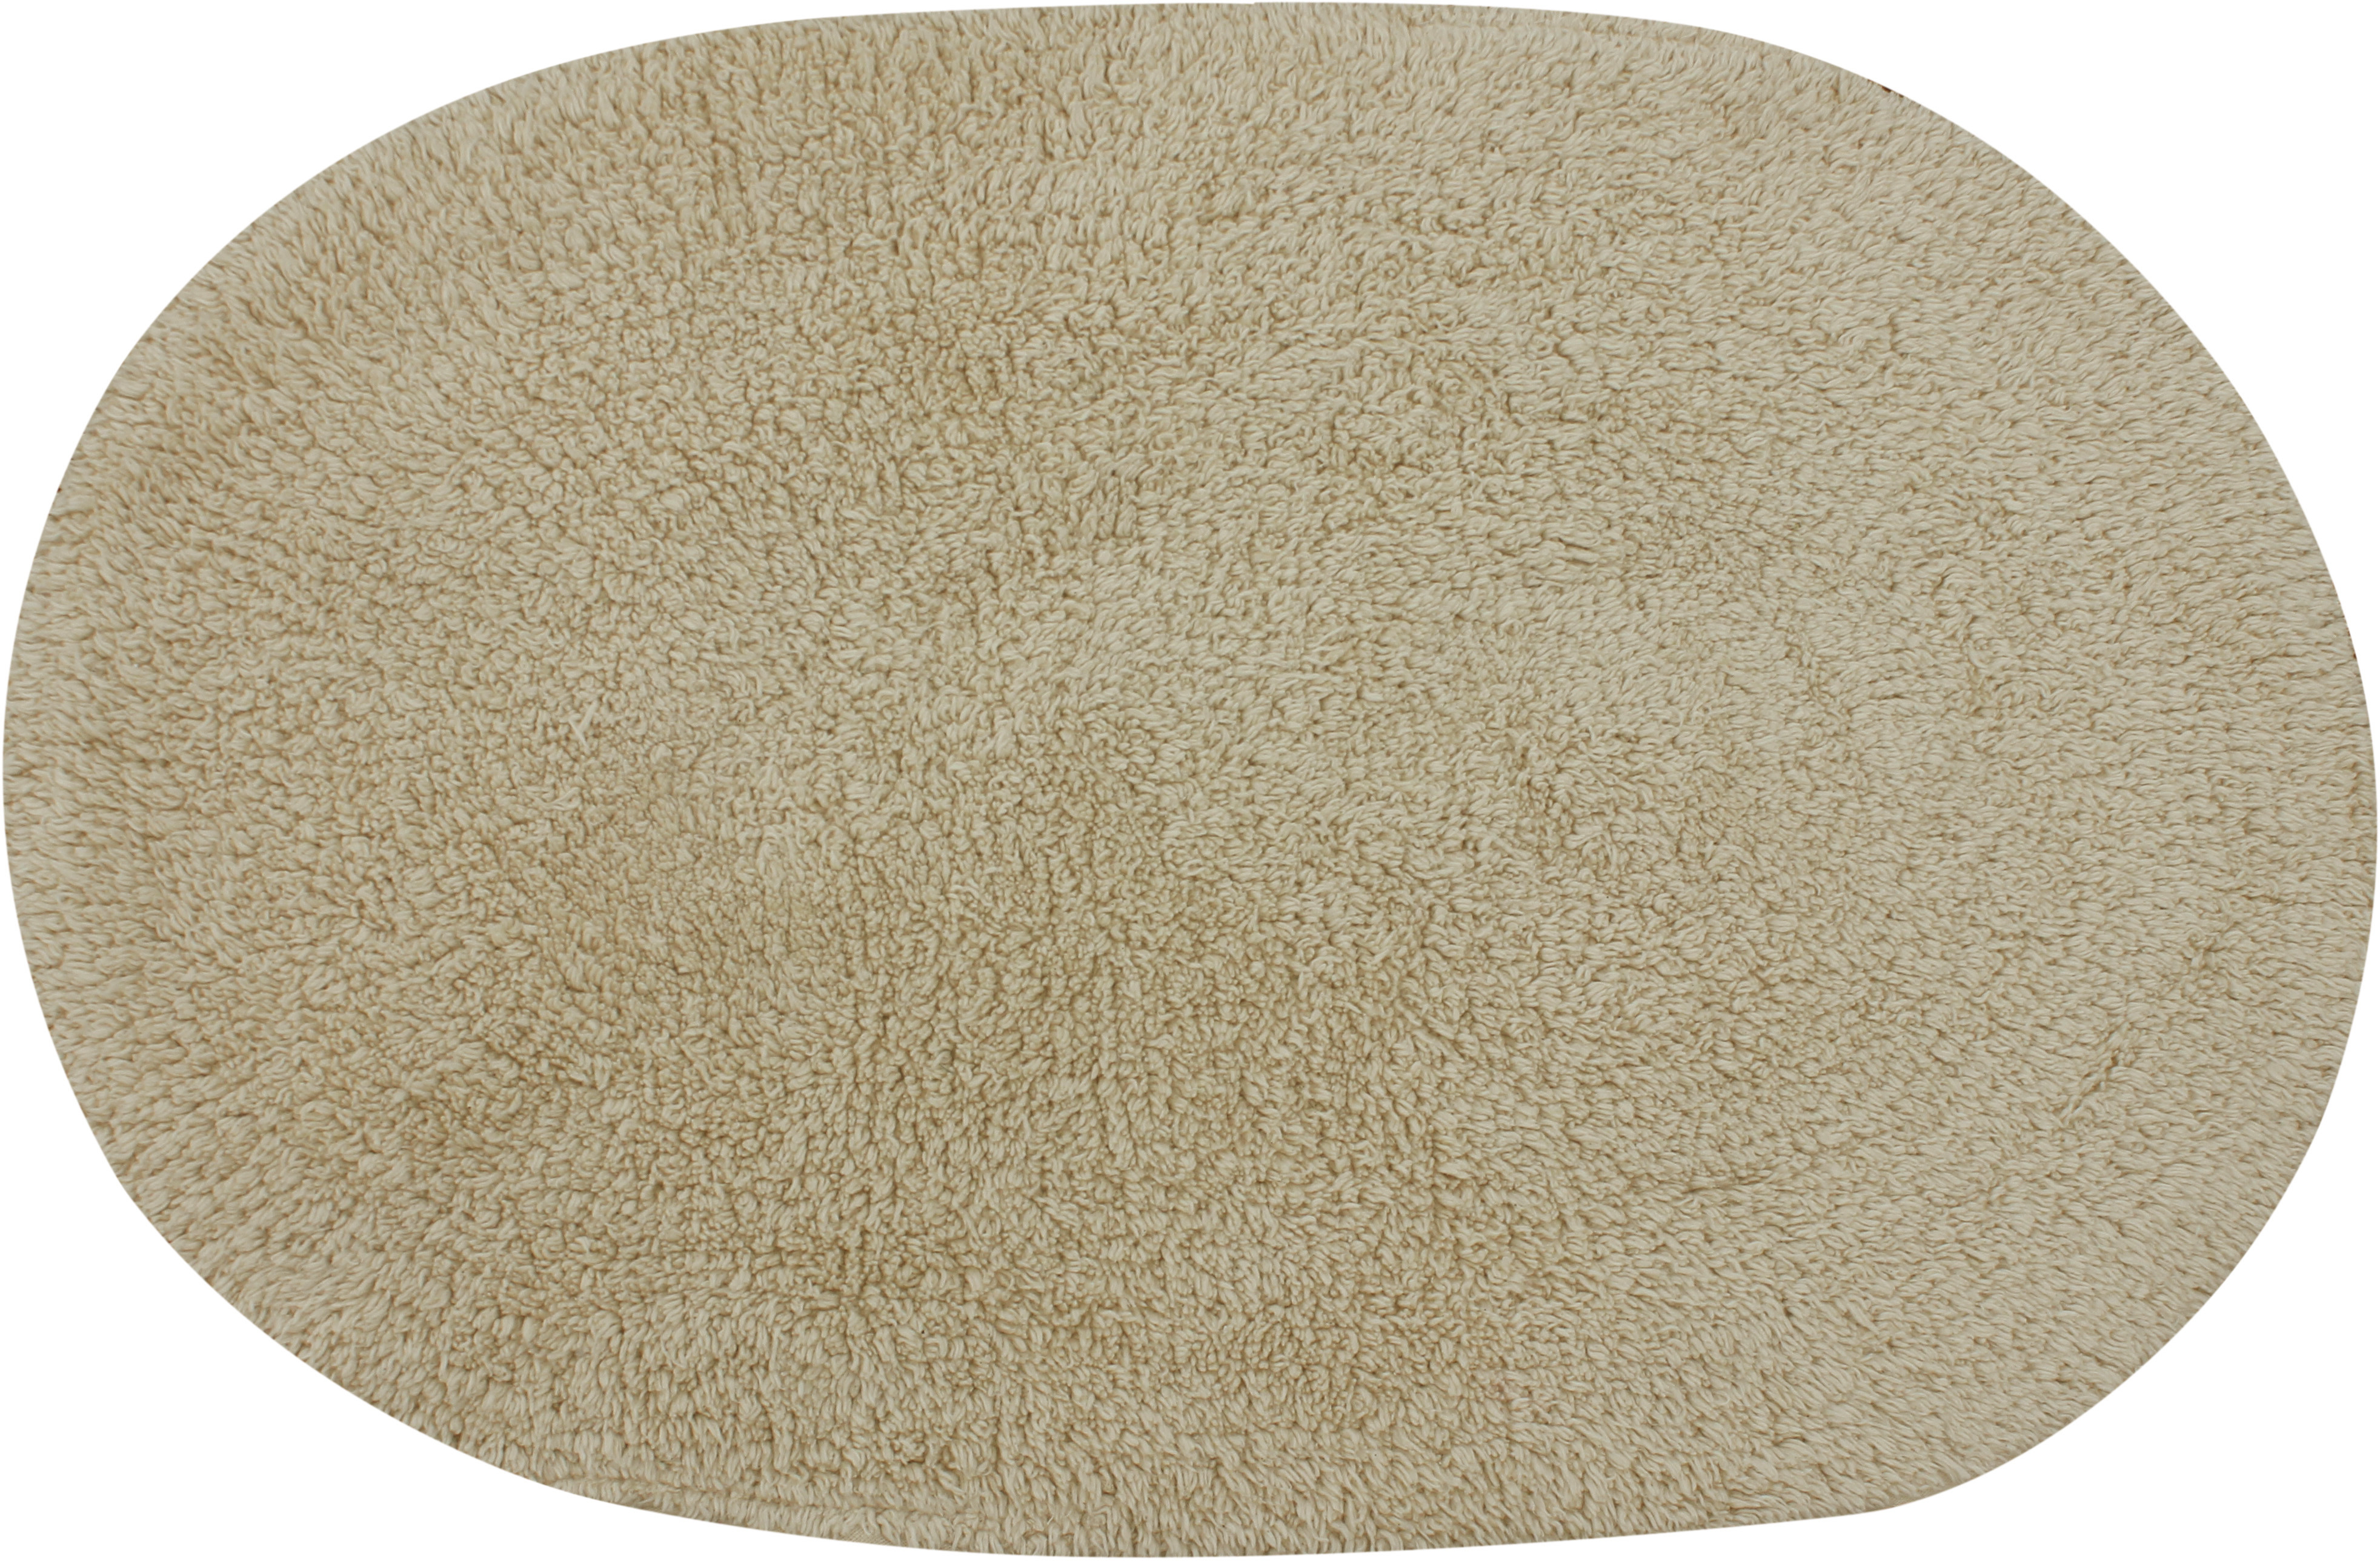 Azaani Cotton Medium Bath Mat Oval Bathmat